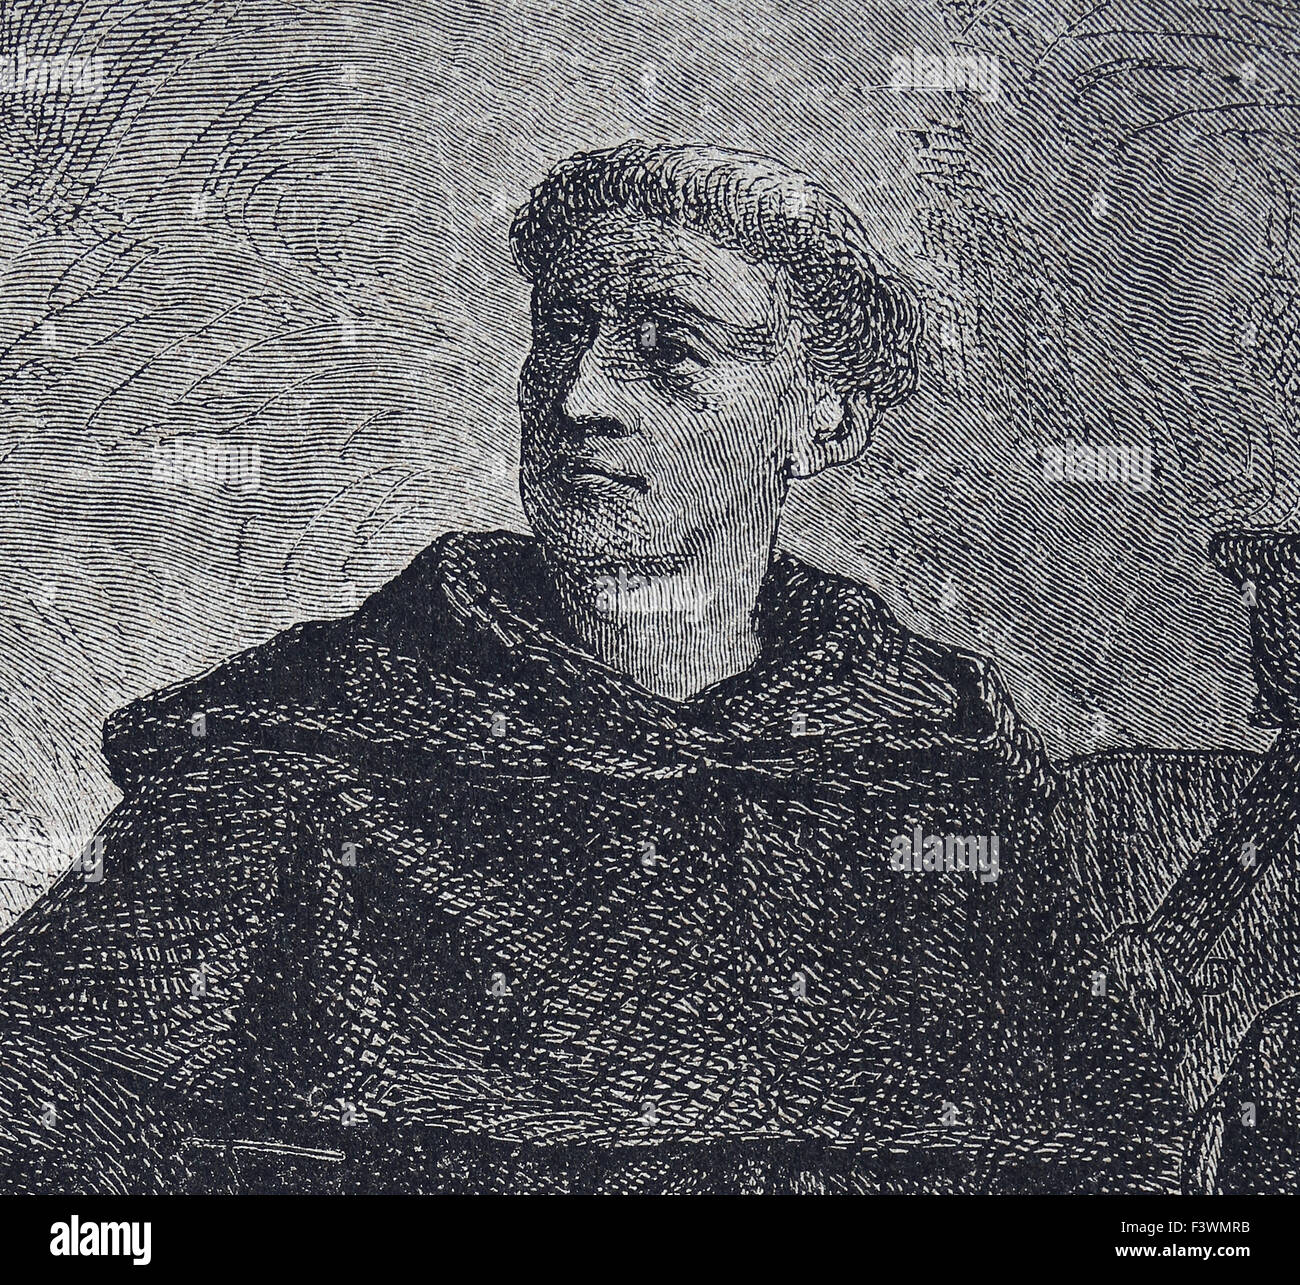 Martin Luther (1483-1546). German reformer. Figure of  Protestant Reformation. Engraving. 19th century. - Stock Image